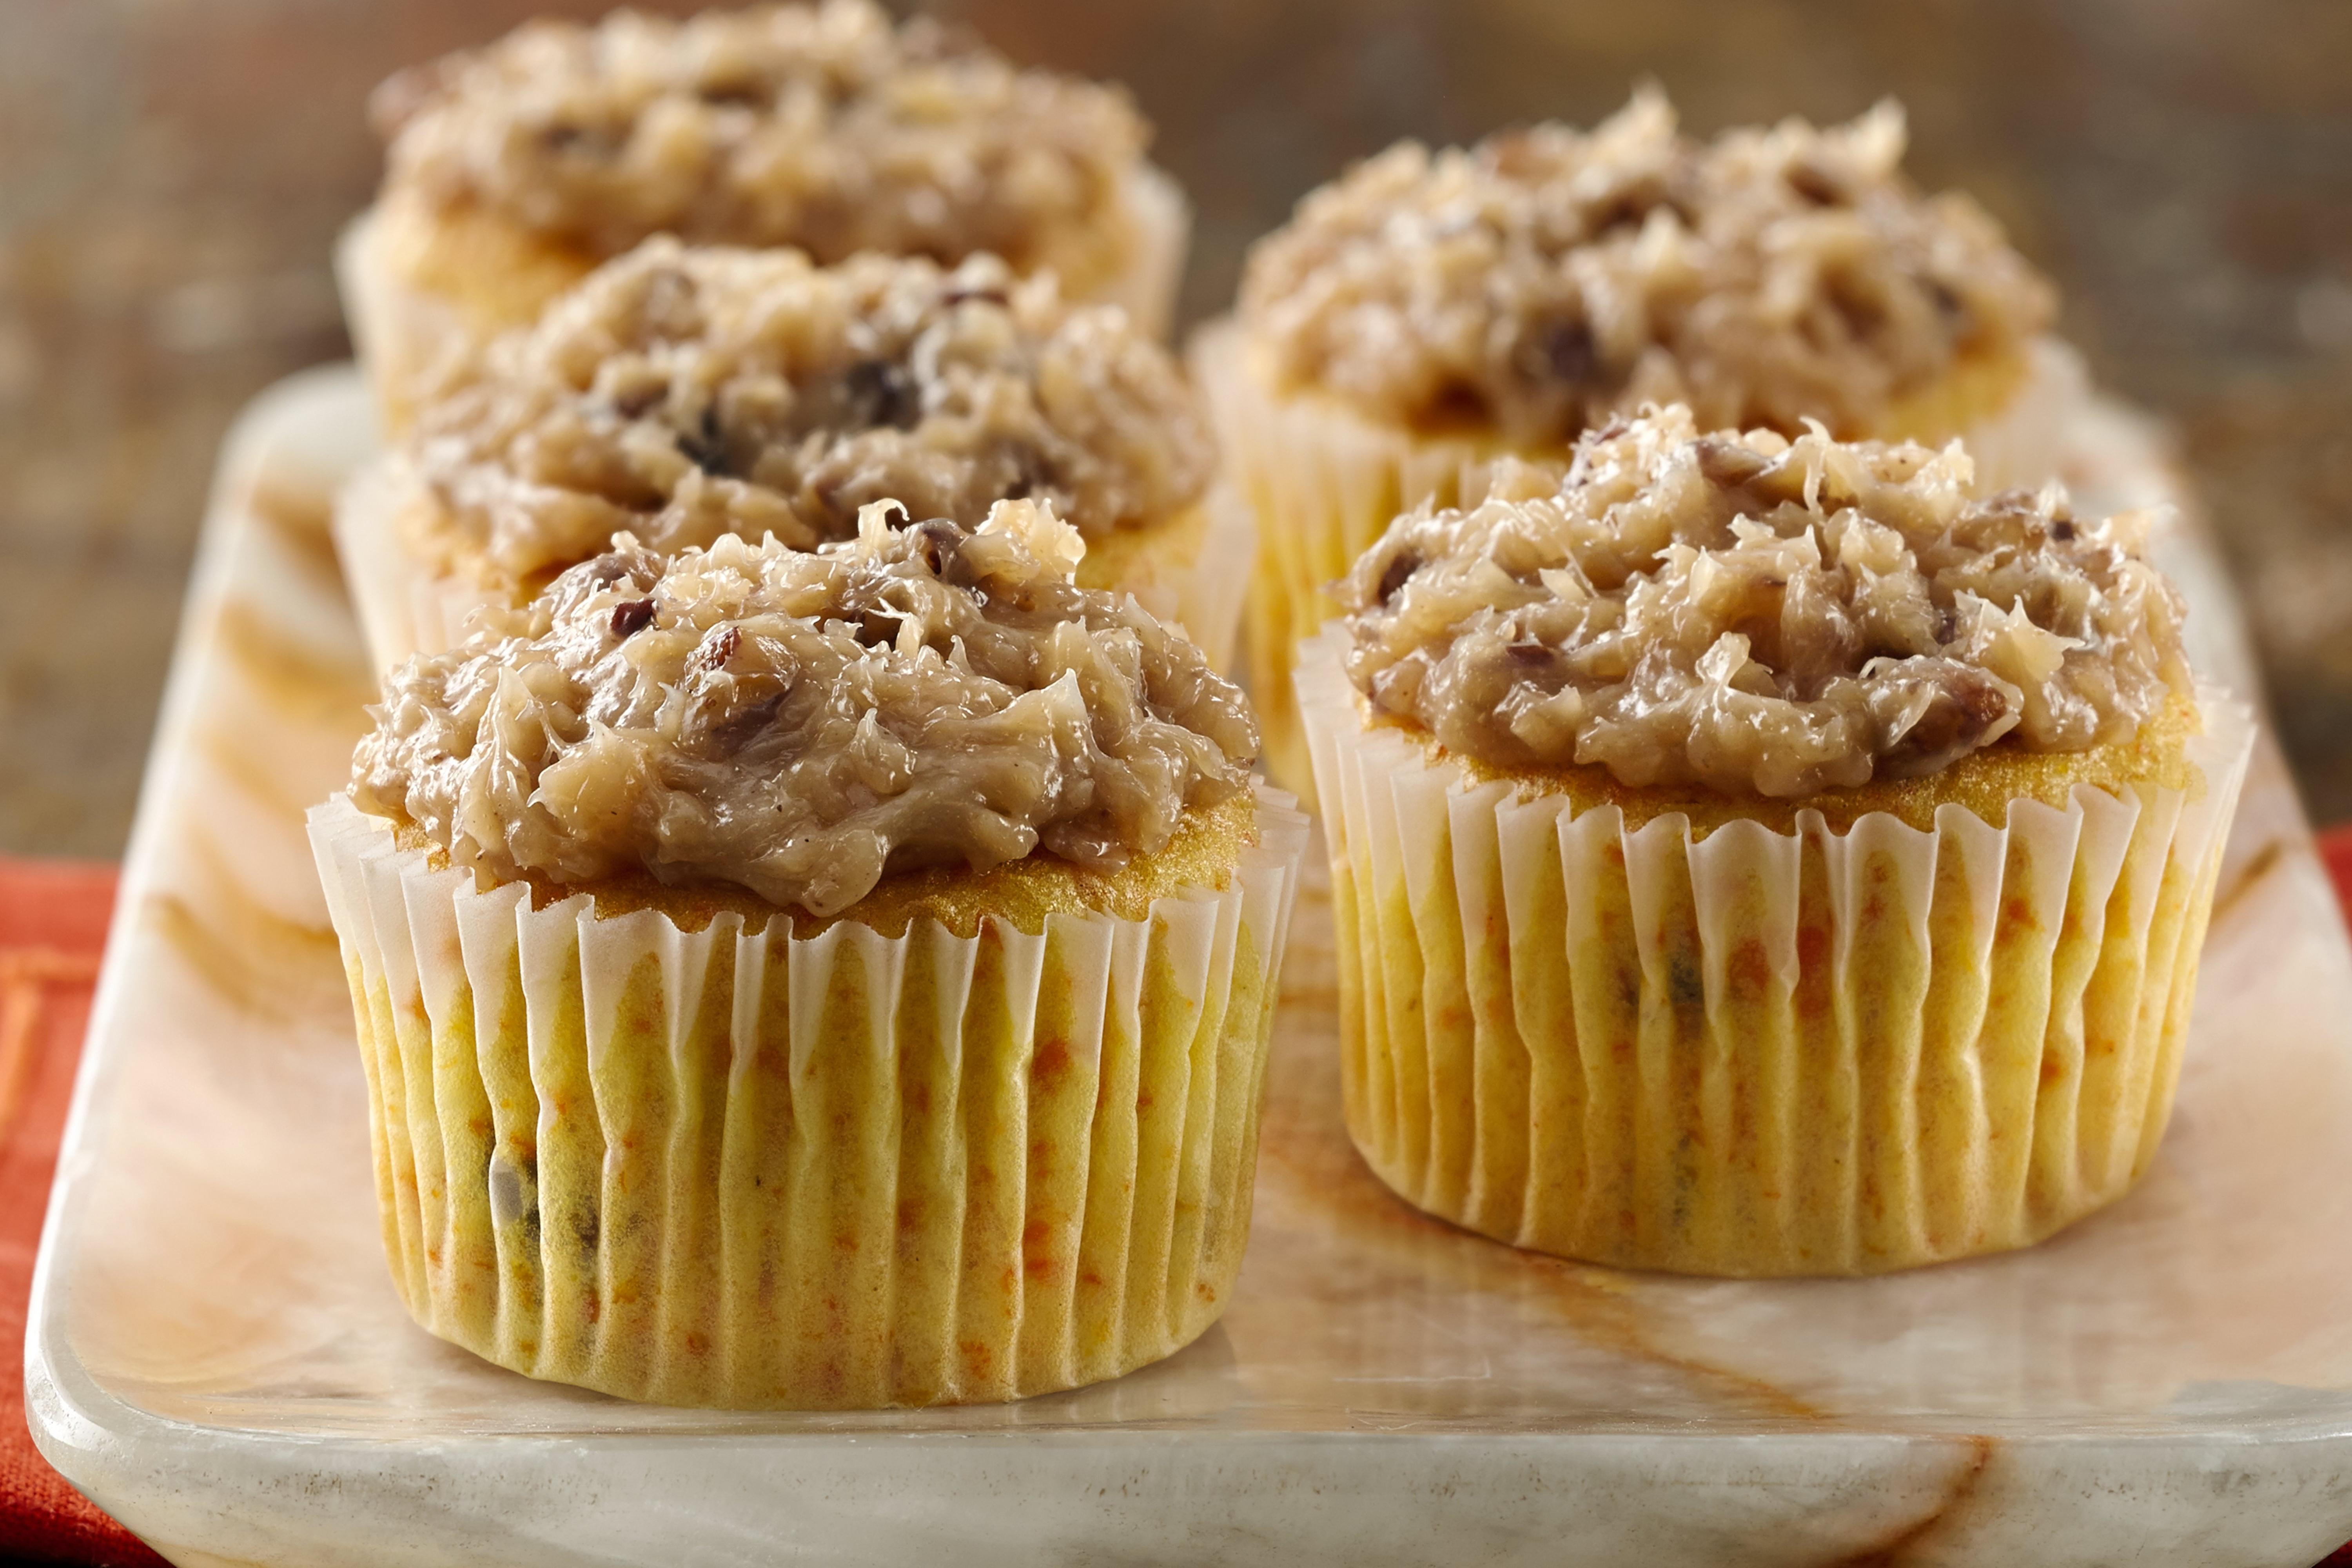 Carrot Cupcakes Topped with Coconut-Pecan Frosting